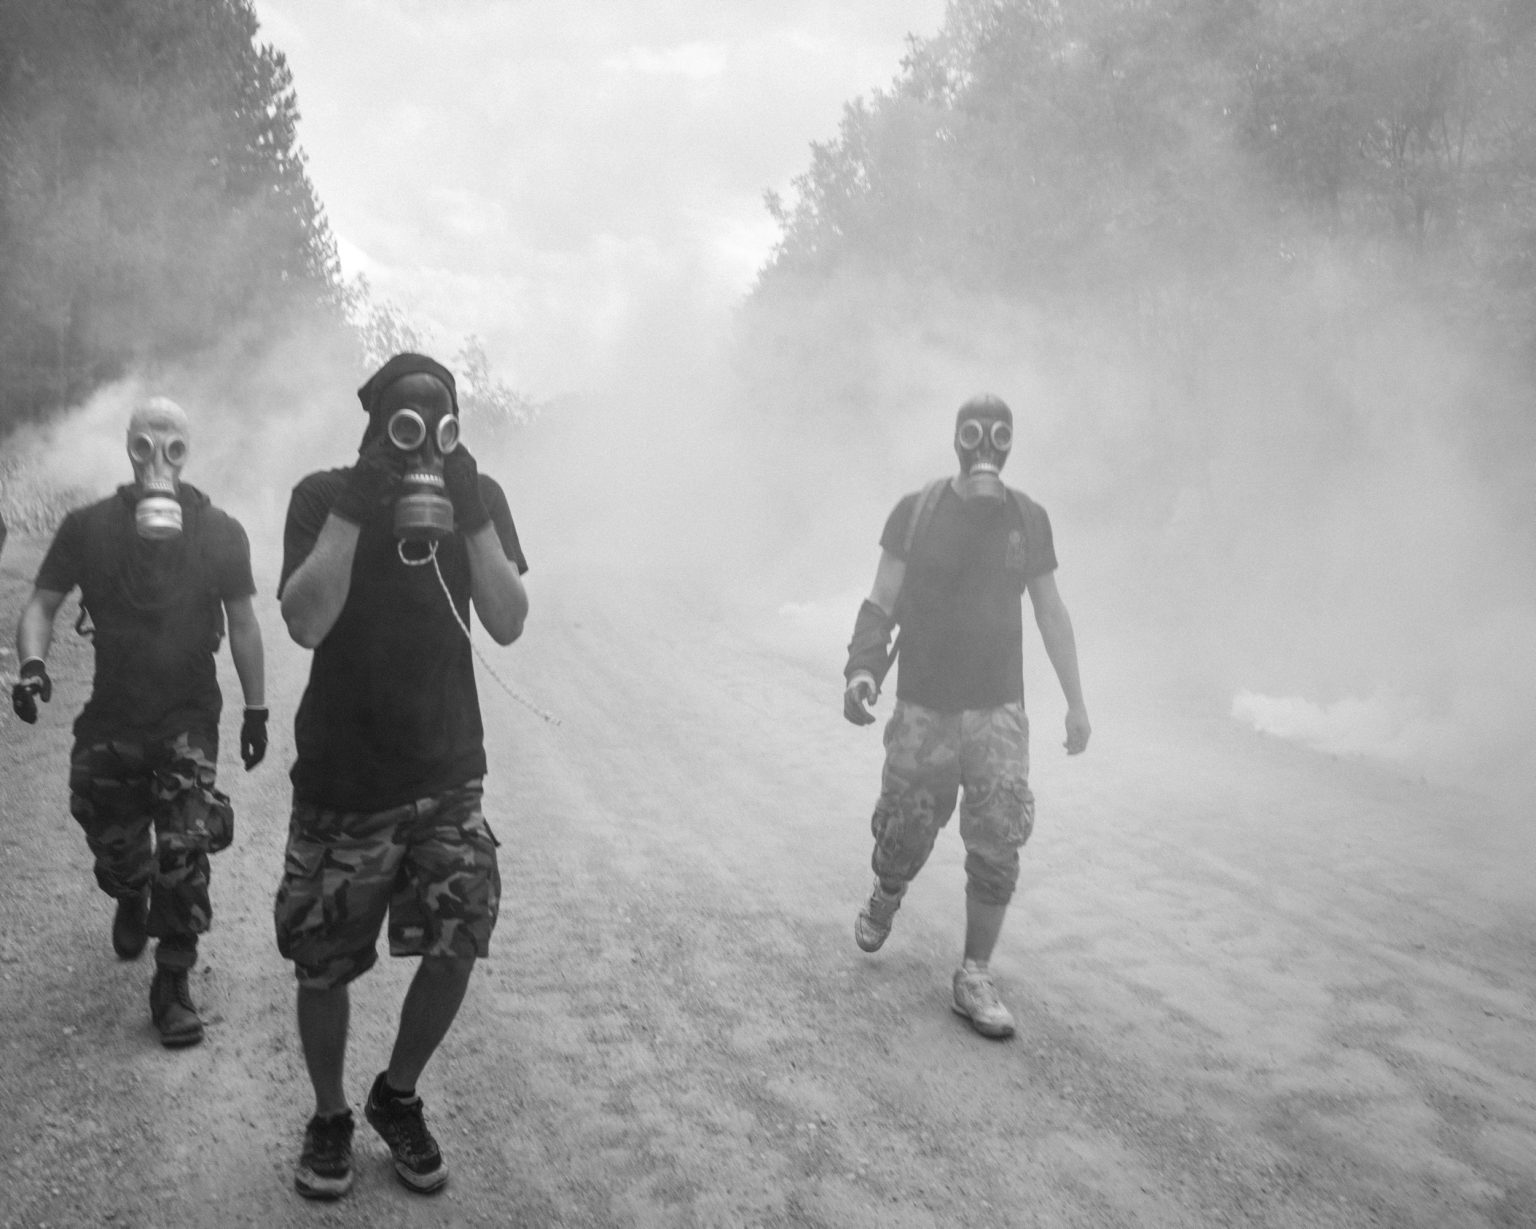 Demonstrators retreating amid the smoke of teargases shot by Ellenic anti riot police at the site where the Canadian company El Dorado started a low cost goldmining project which is endangering the environment of the entire area. Megali Panagia, Greece, 2015